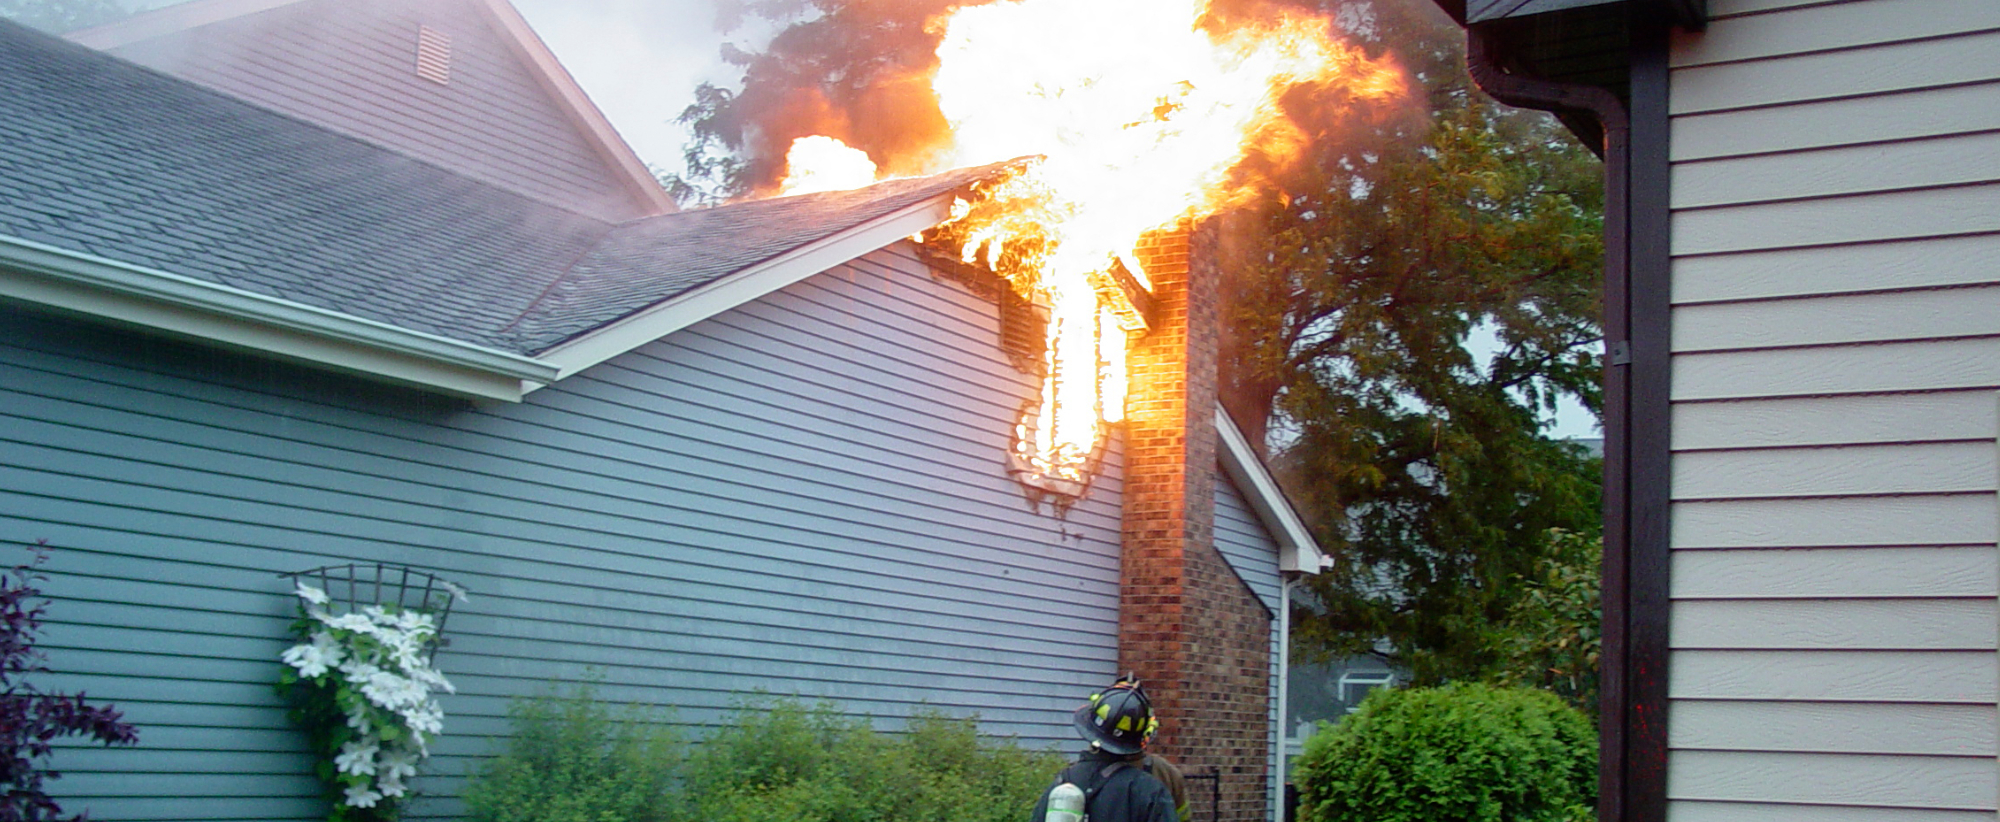 Know your Options after a House Fire